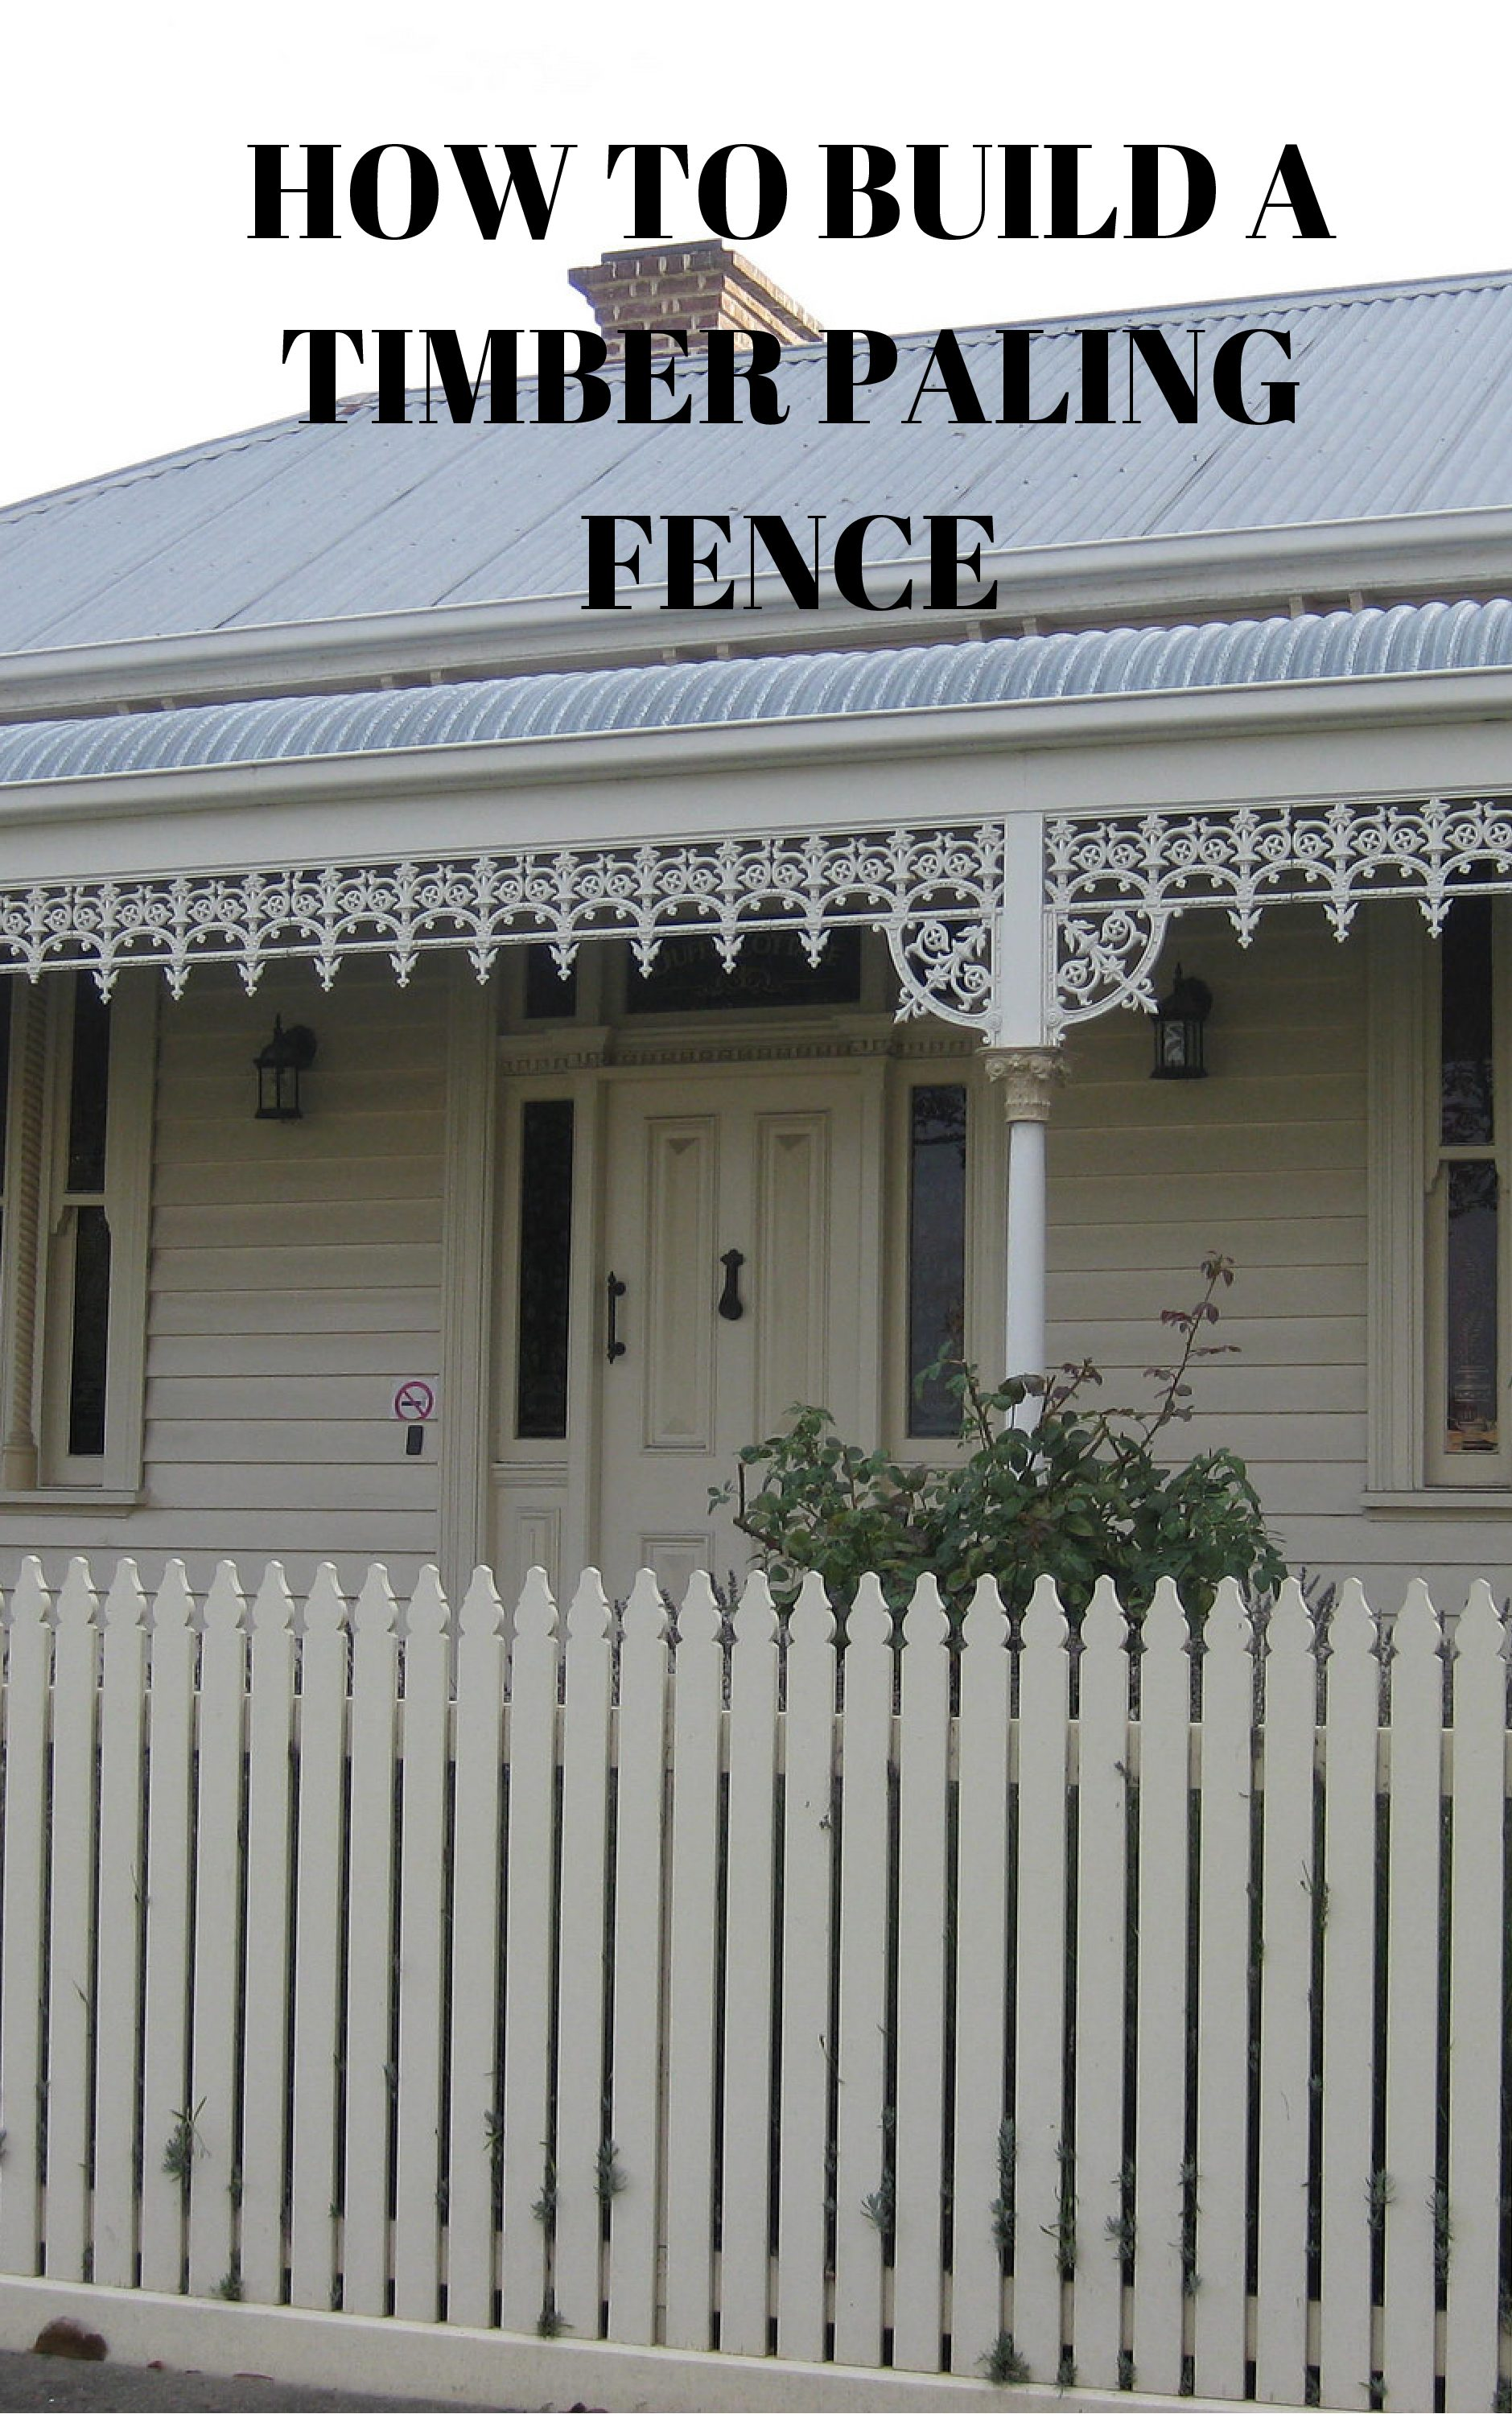 Builing a timber paling fence Get instructions from